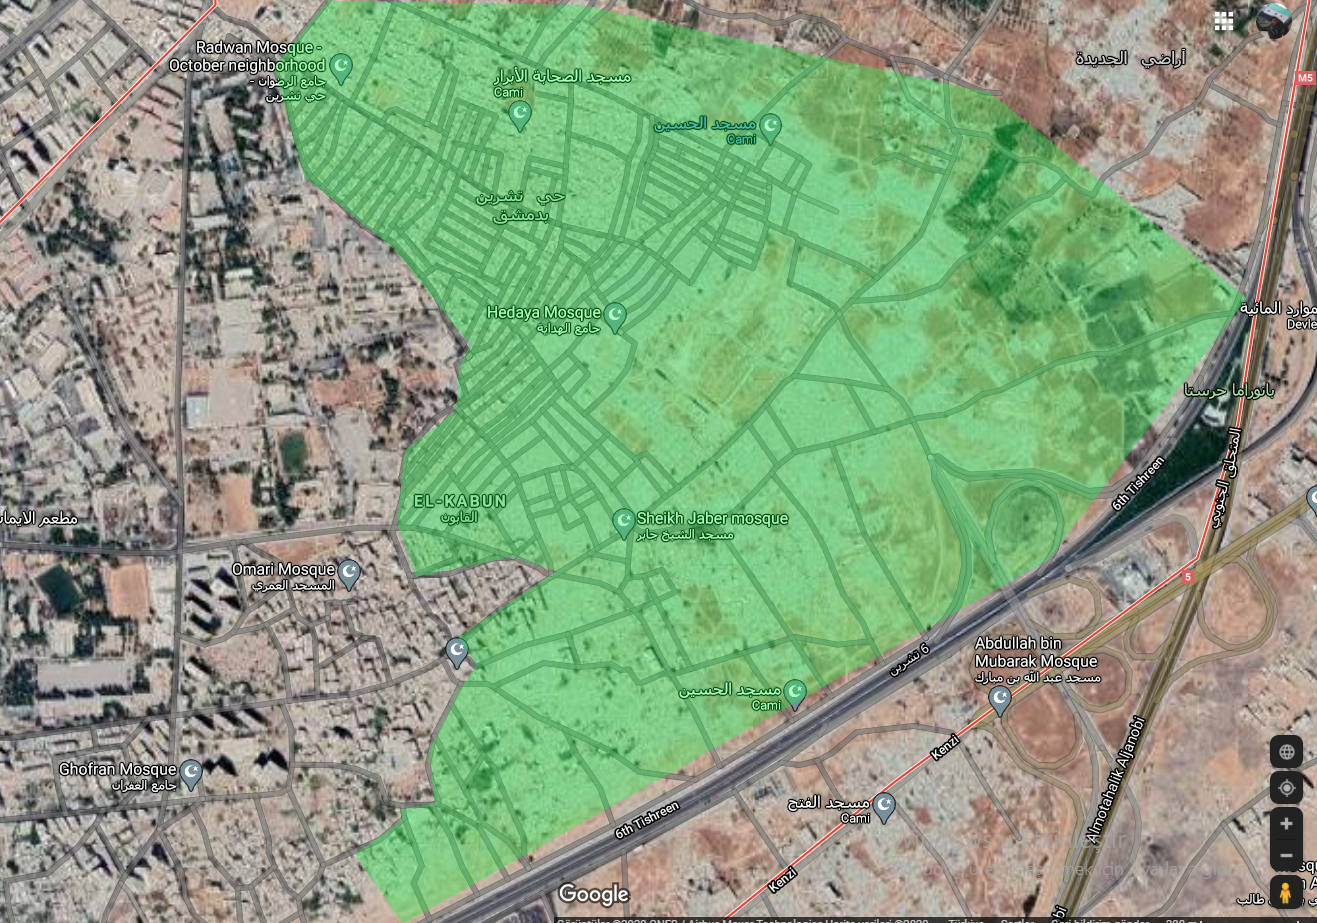 An image revealing the level of destruction caused by the bombing and battles that the al-Qaboun neighborhood in Damascus has experienced - media analyst Qusay Abd al-Bari - 2020